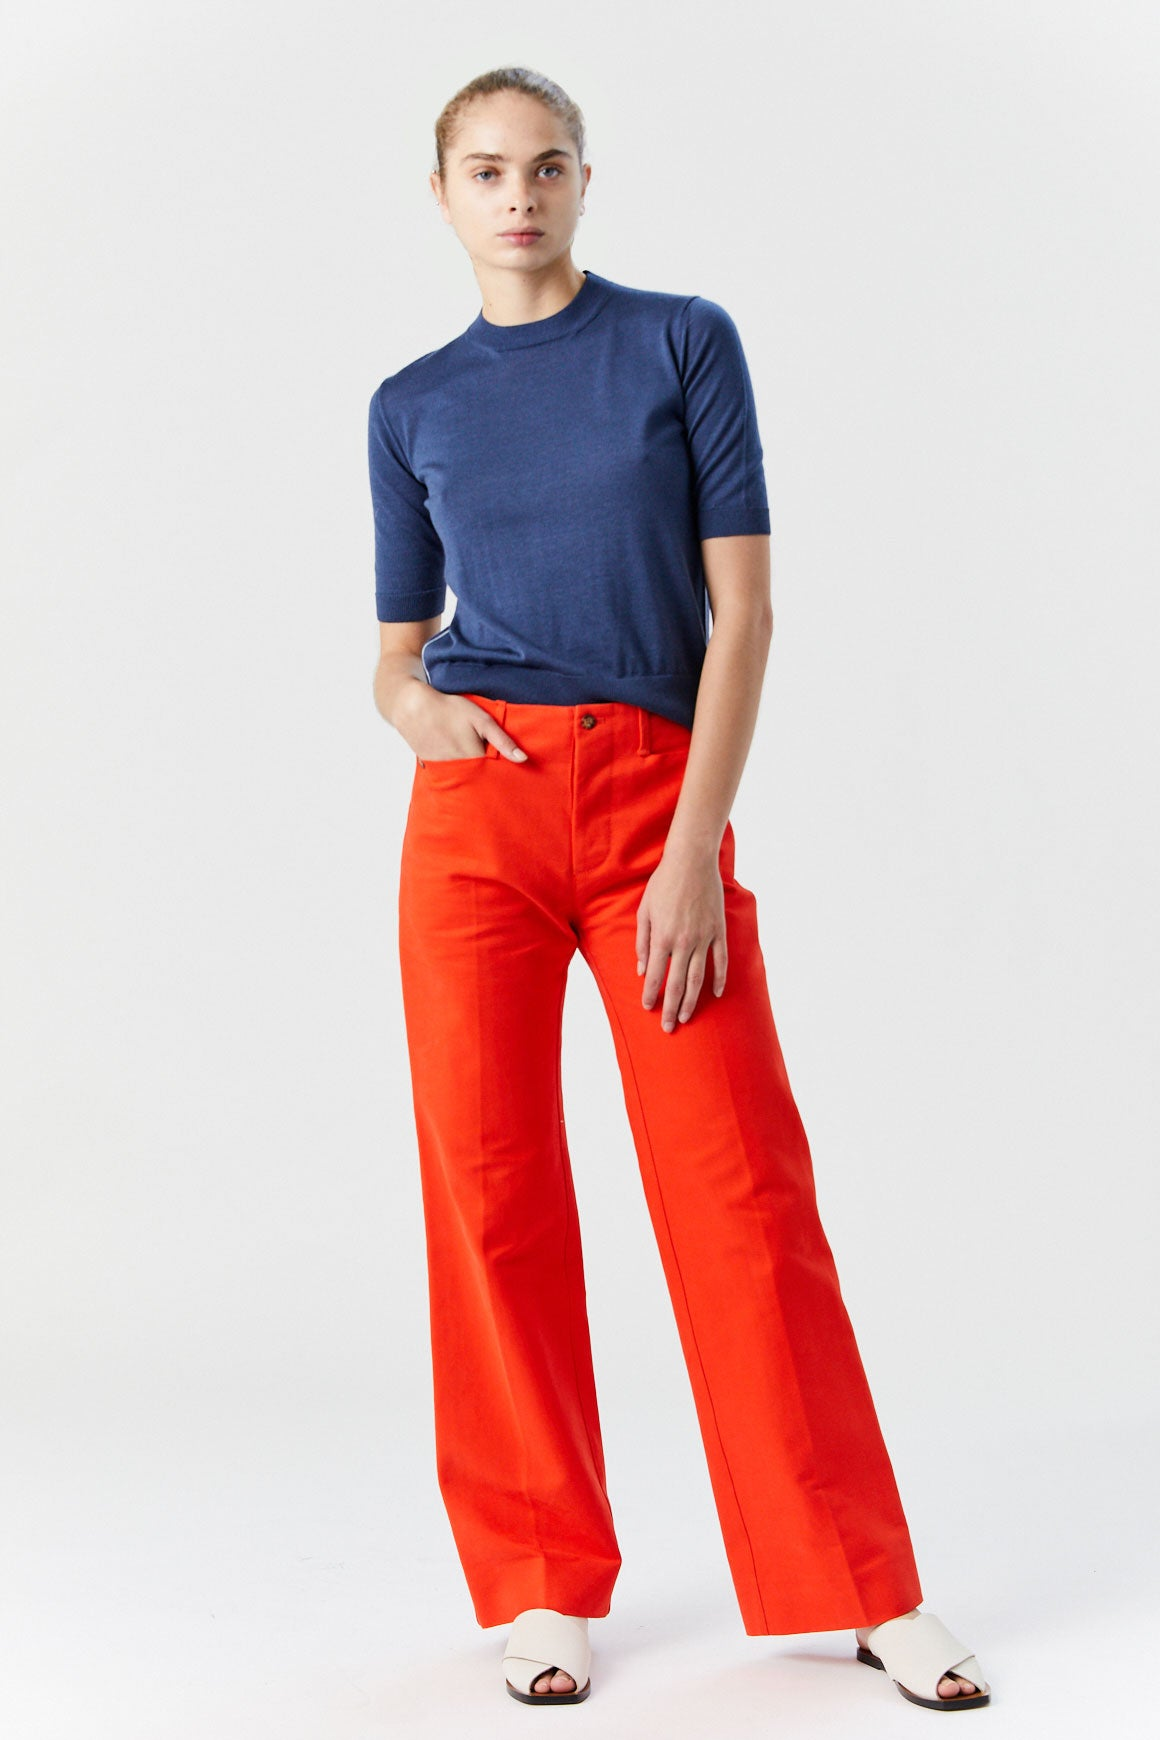 LOROD - Tailored Front Crease Pant, Red